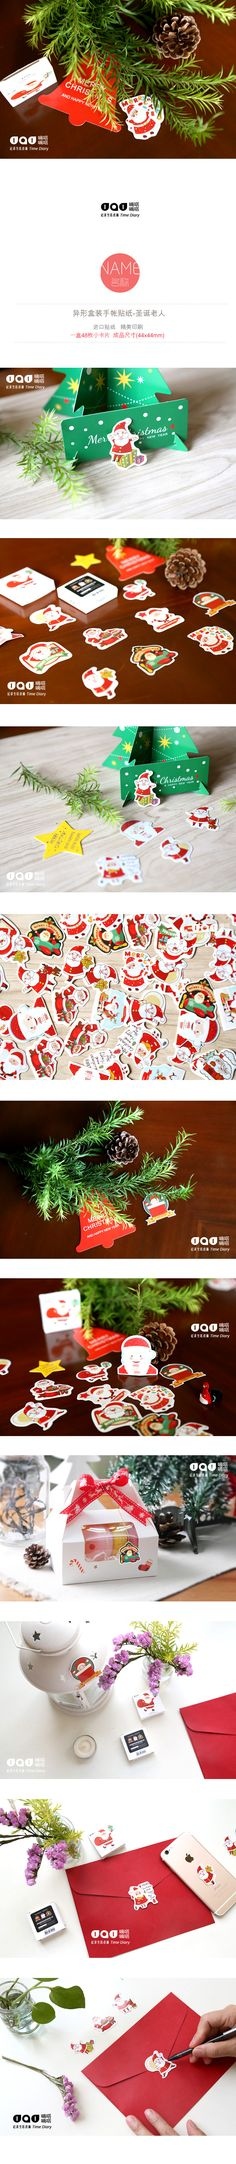 45 pcs/pack Merry Christmas Santa Clause Decorative Sticker Diary Album Label Stickers DIY Stationery Stickers Gift Sticker